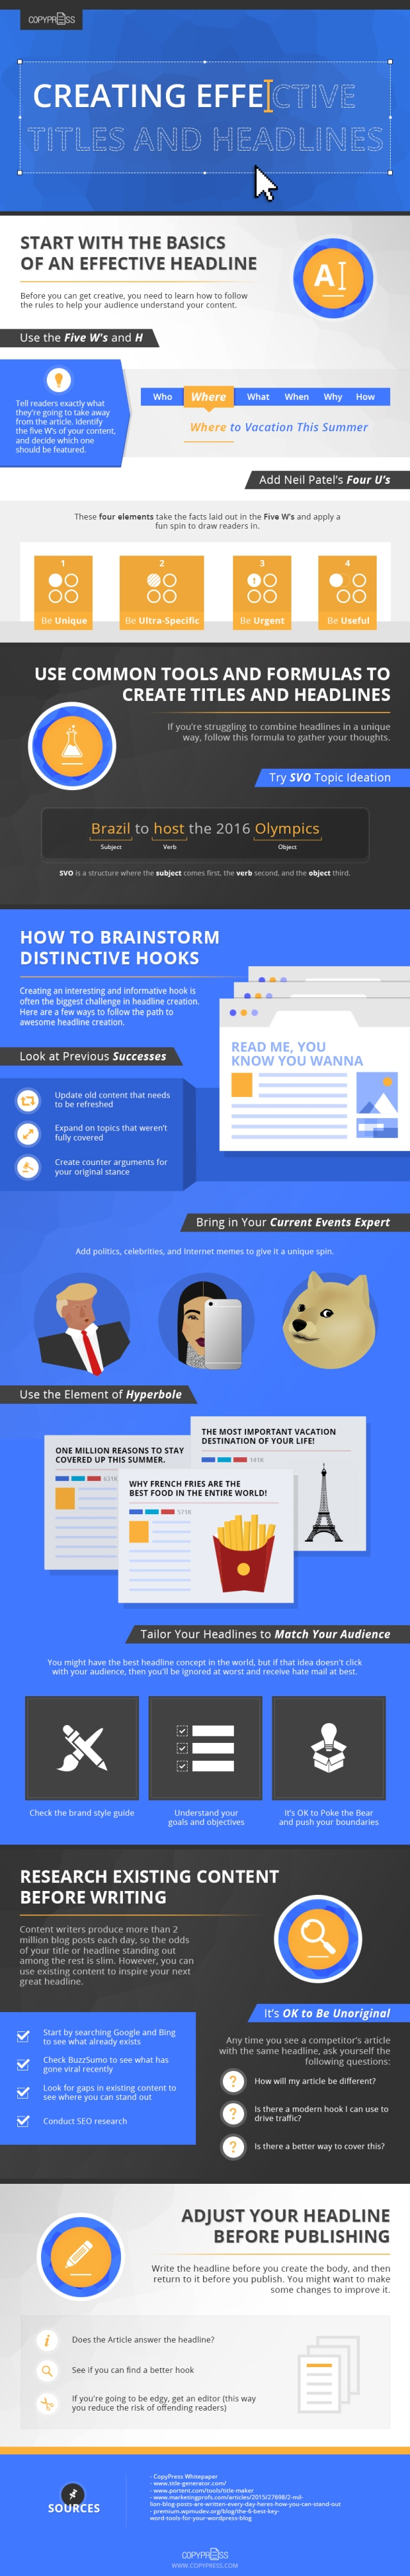 how-to-create-blog-titles-social-media-headlines-that-boost-traffic